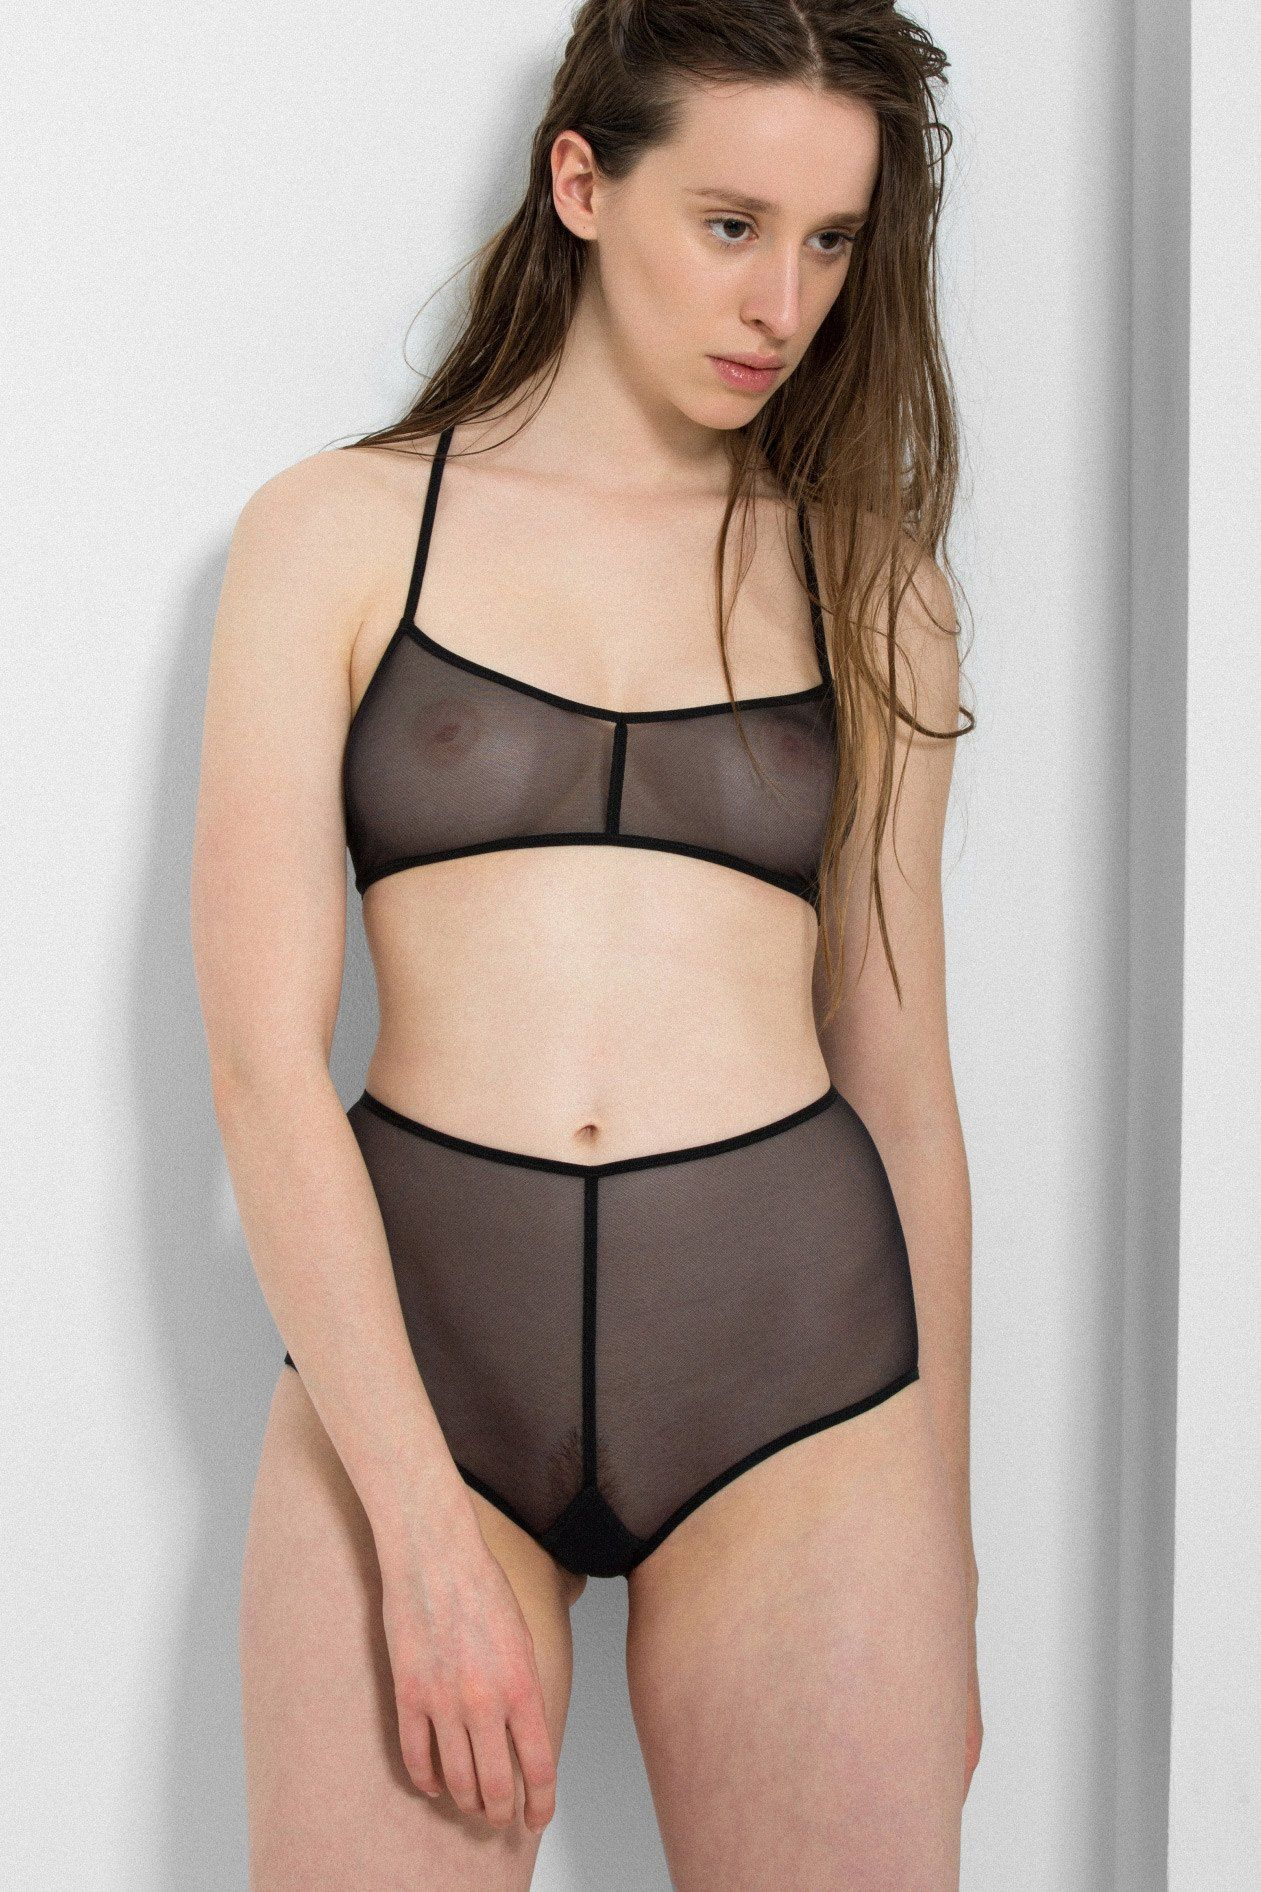 UNDERWEAR - Bras Ann Demeulemeester For Sale Cheap Price From China Official Cheap Online How Much 2018 Unisex For Sale 0vTkQtOLwJ